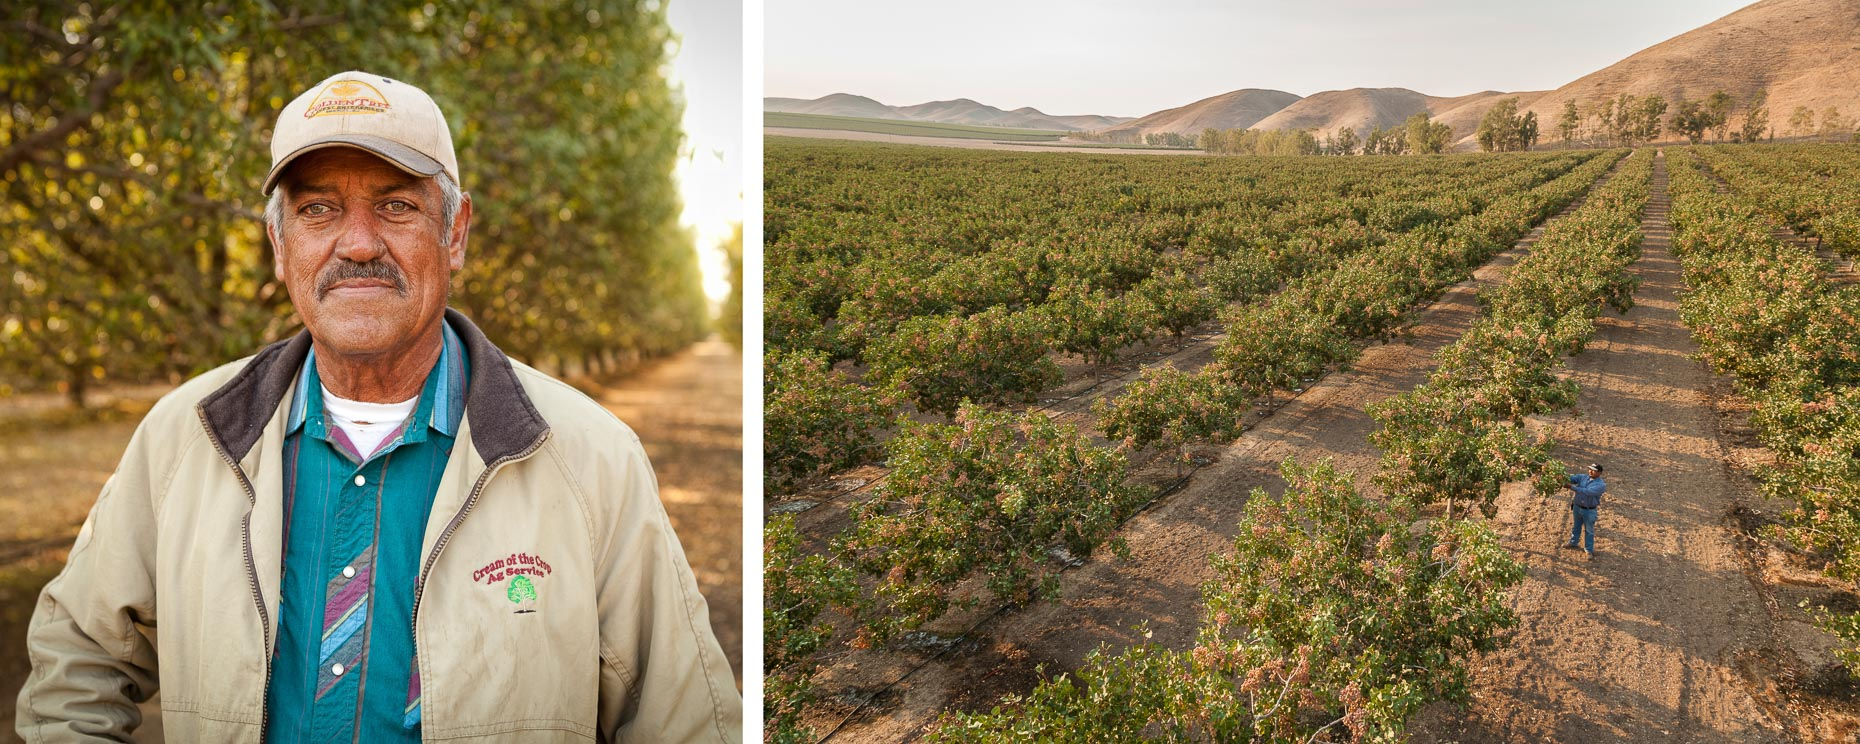 Portrait of farmworker and shot of orchard farm. Agriculture. David Zaitz Photography.